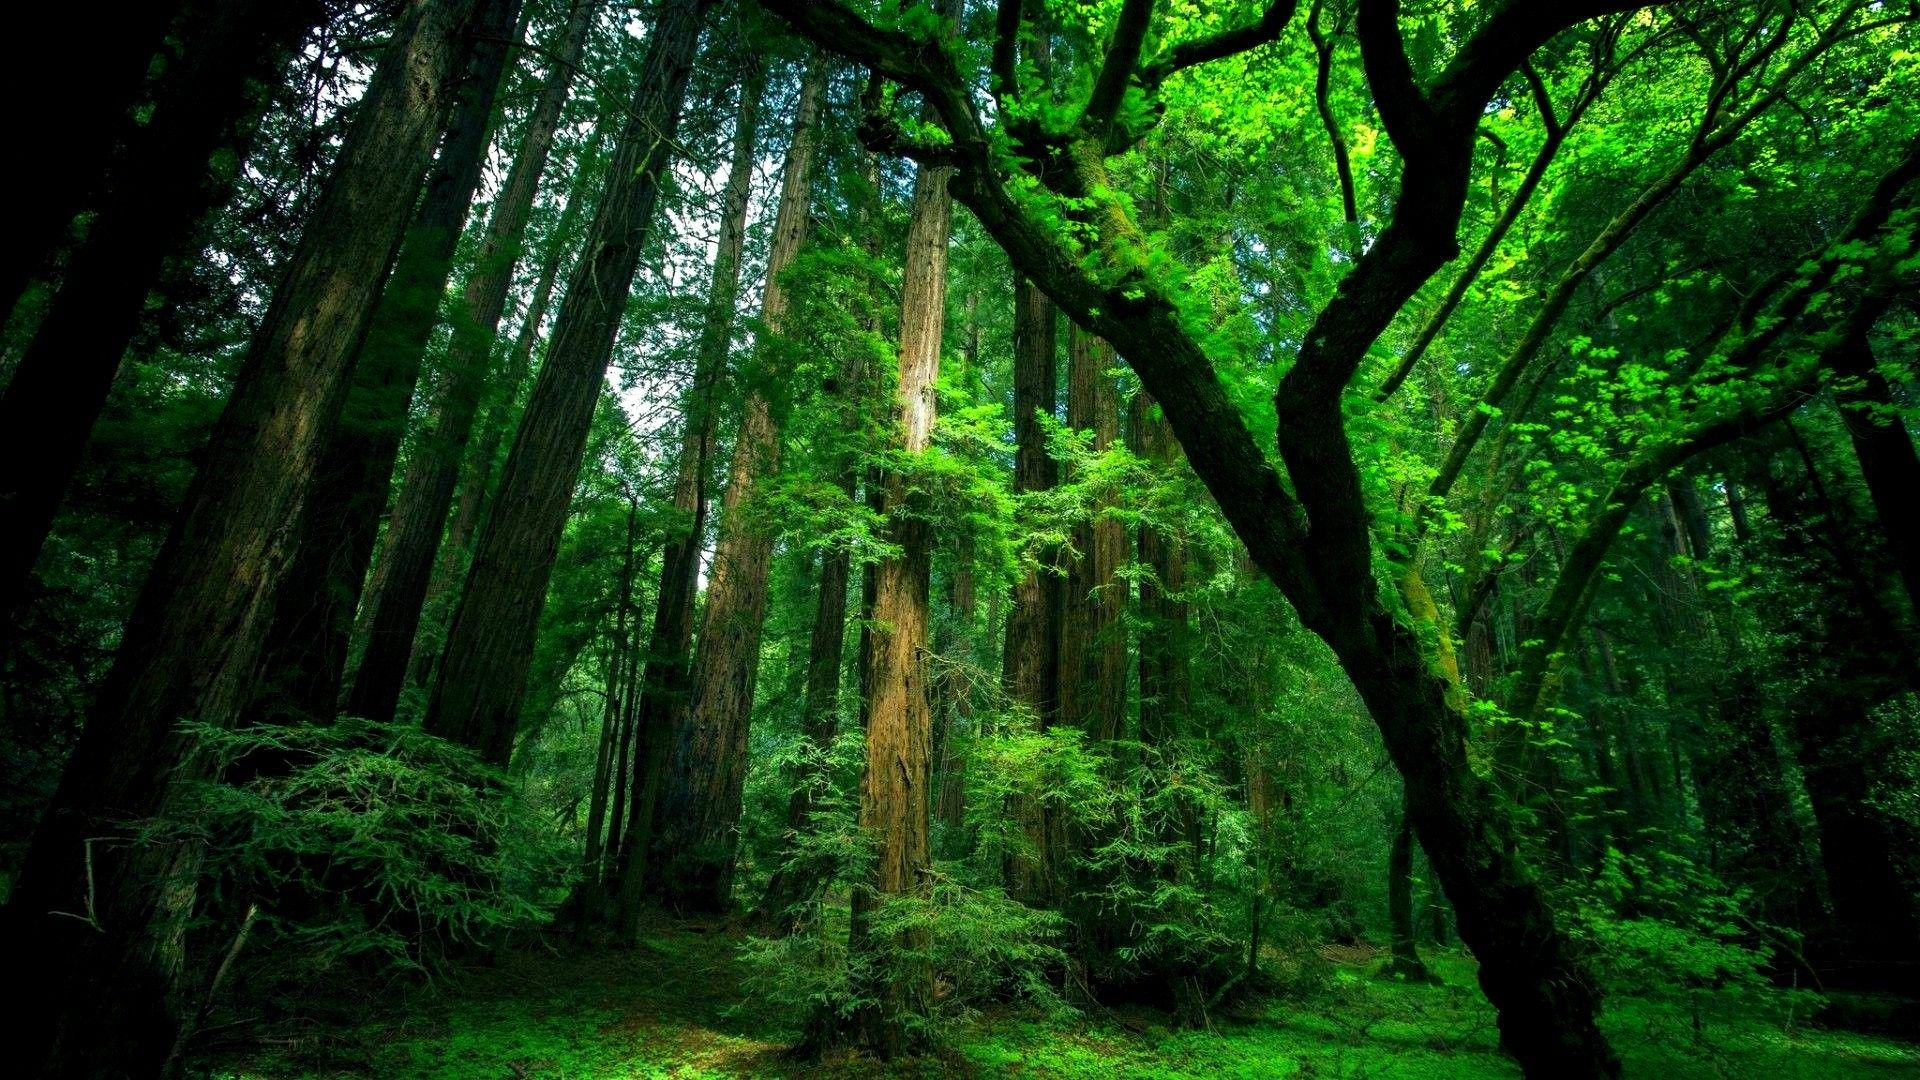 Http Hdwallpaperia Com Wp Content Uploads 2013 10 Green Forest Wallpaper Jpg Forest Wallpaper Beautiful Forest Rainforest Pictures